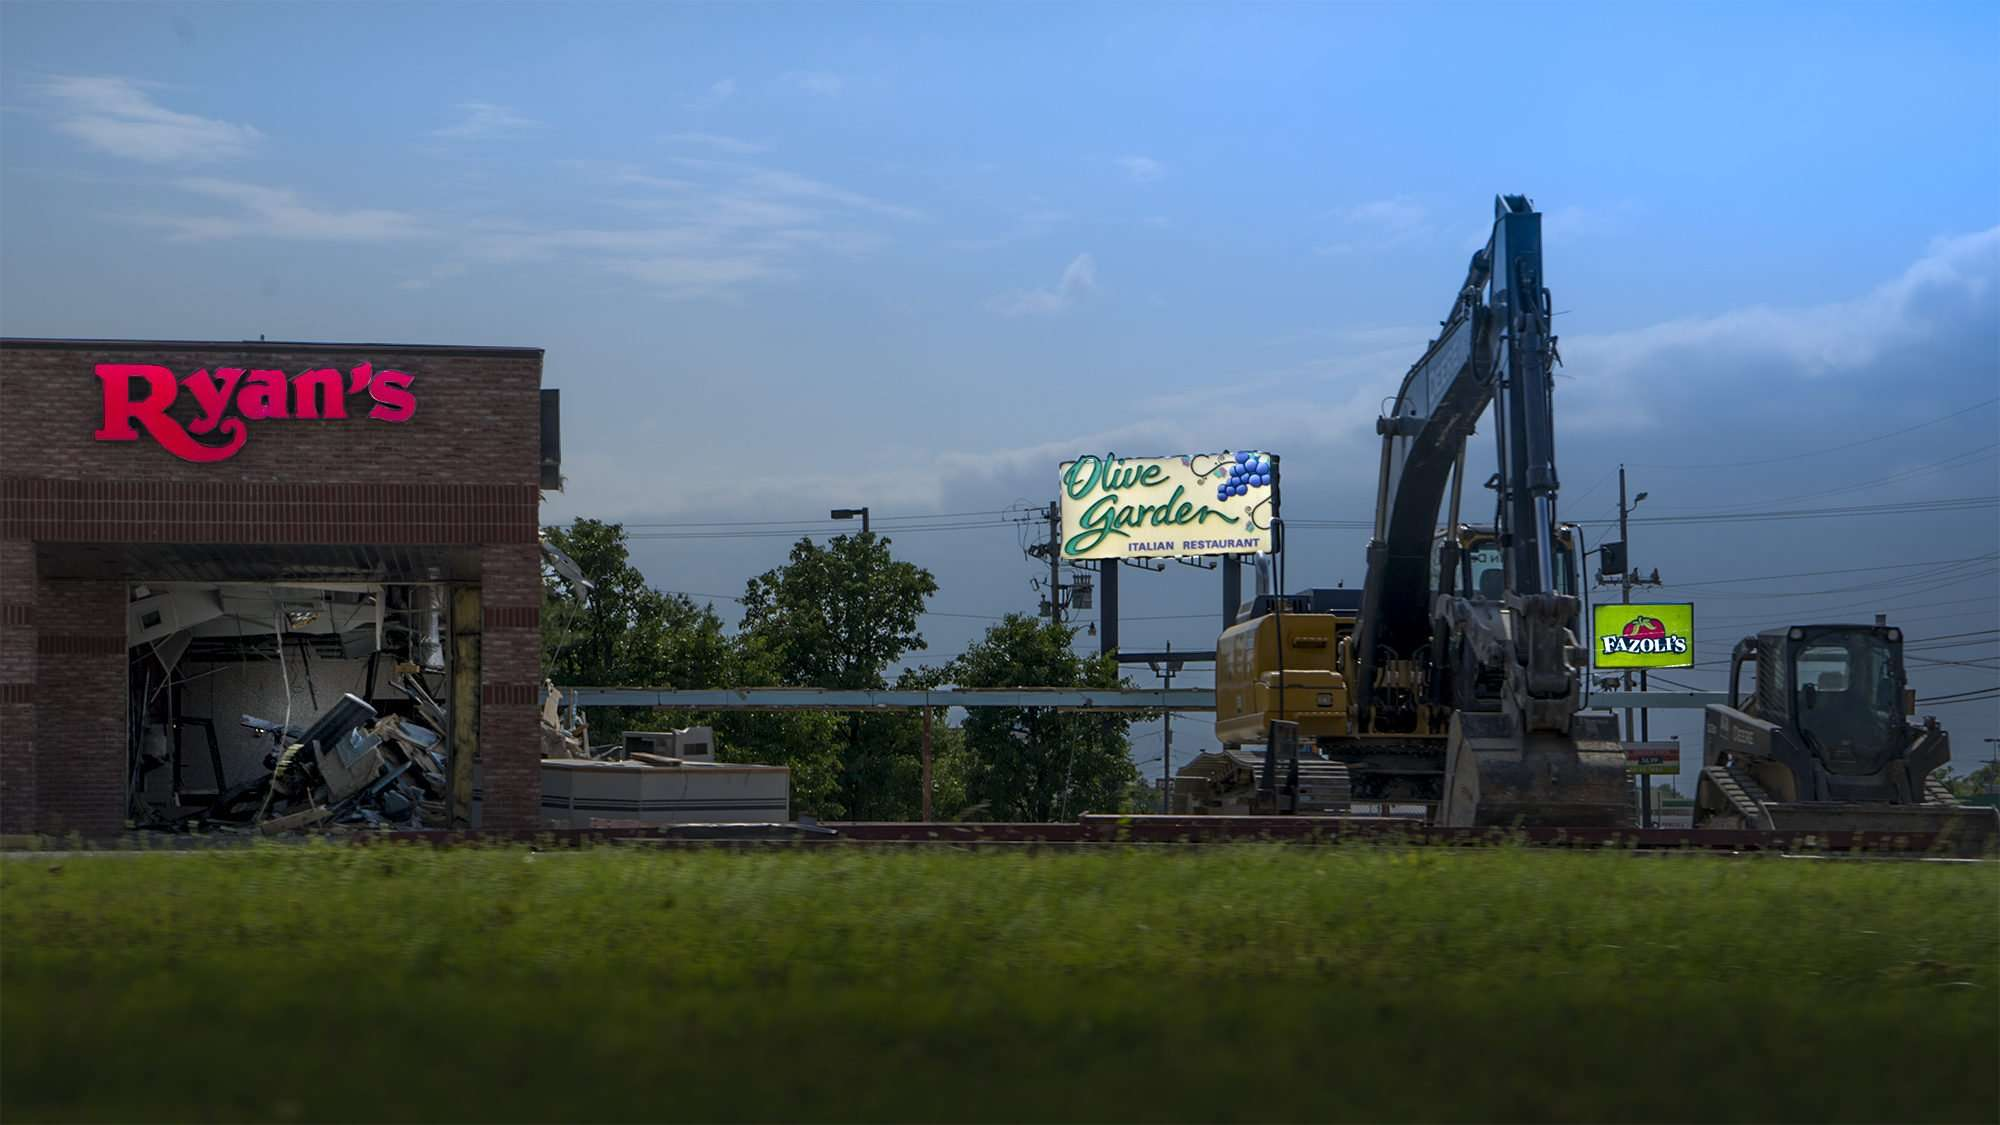 May 25, 2017 - Demolition of Ryan's for LongHorn Steakhouse, Hinkleville Rd, Paducah, KY/photonews247.com